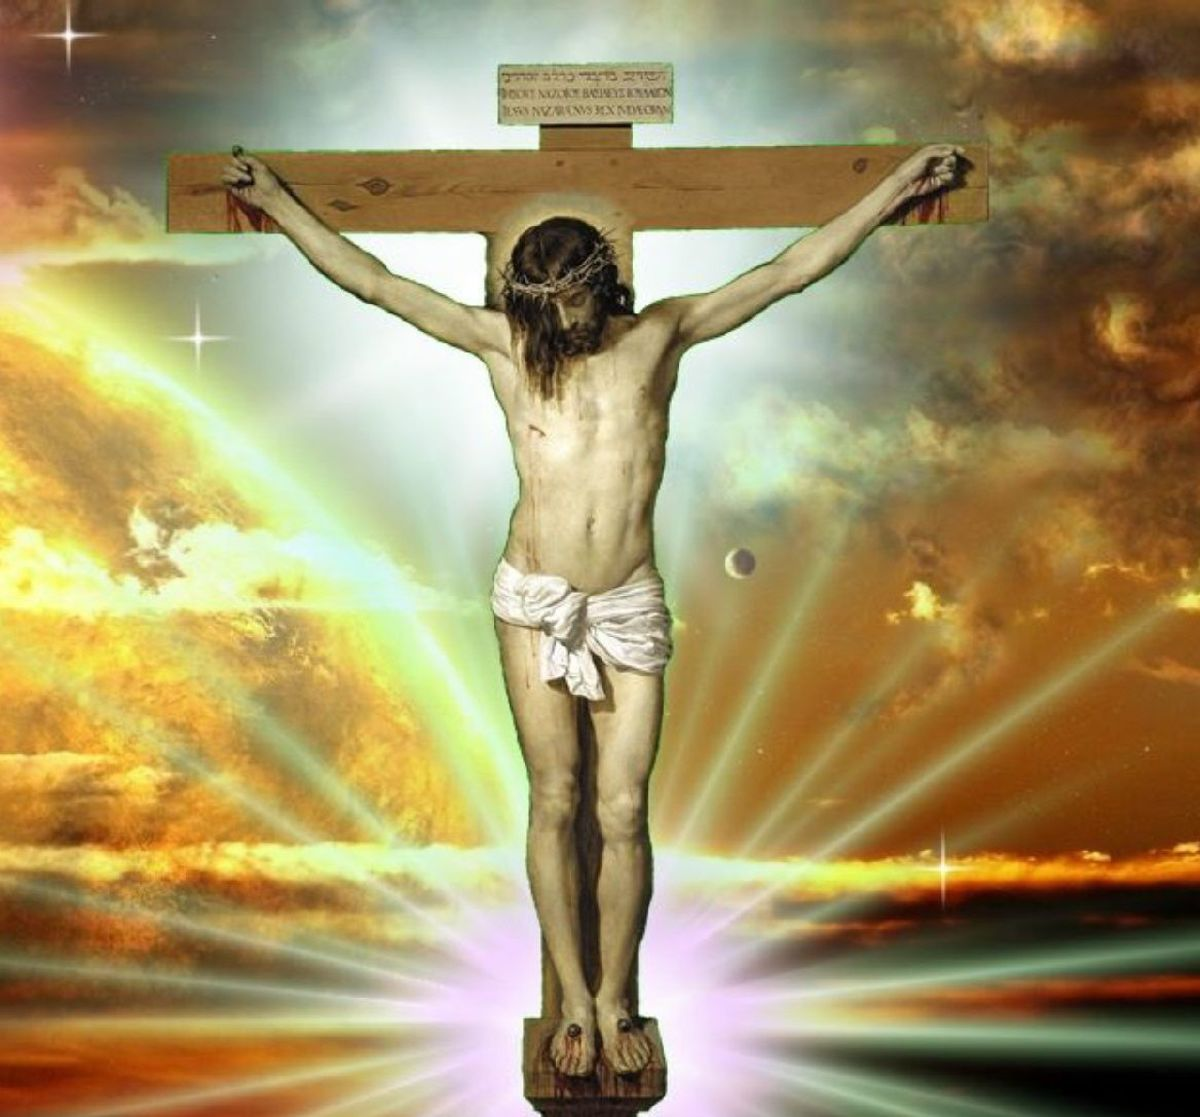 This is just one of the picture of Jesus Christ on the cross. The religious world wants us to believe that Jesus was born to be the lamb of God that would sacrifice himself  to take away the sins of the world. But is this what God really wanted?